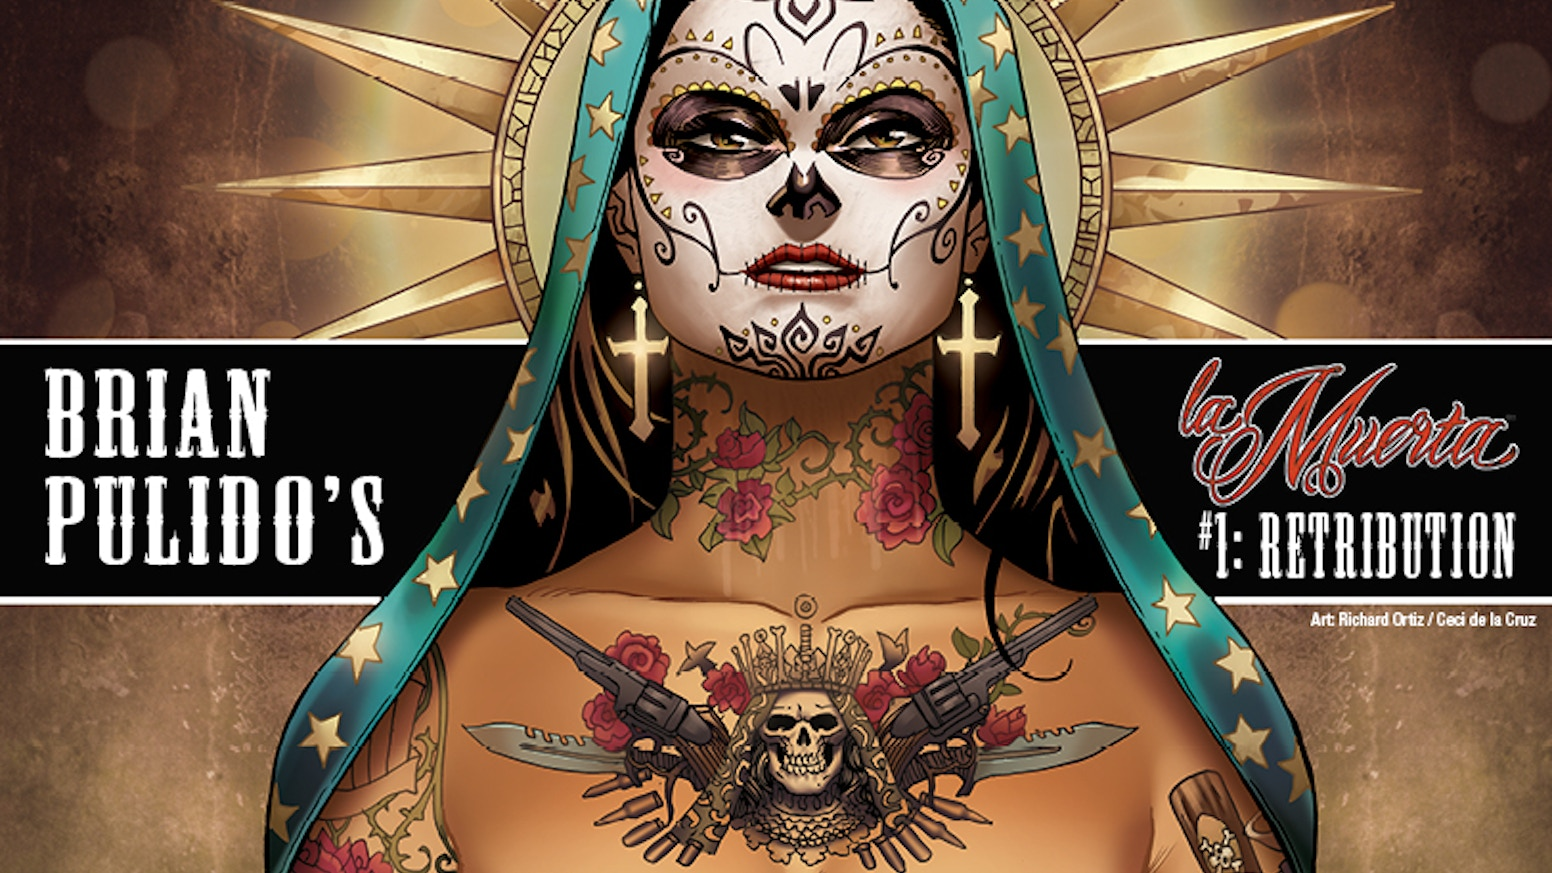 B. PULIDO'S NEWEST GRAPHIC NOVEL: LA MUERTA #1: RETRIBUTION!